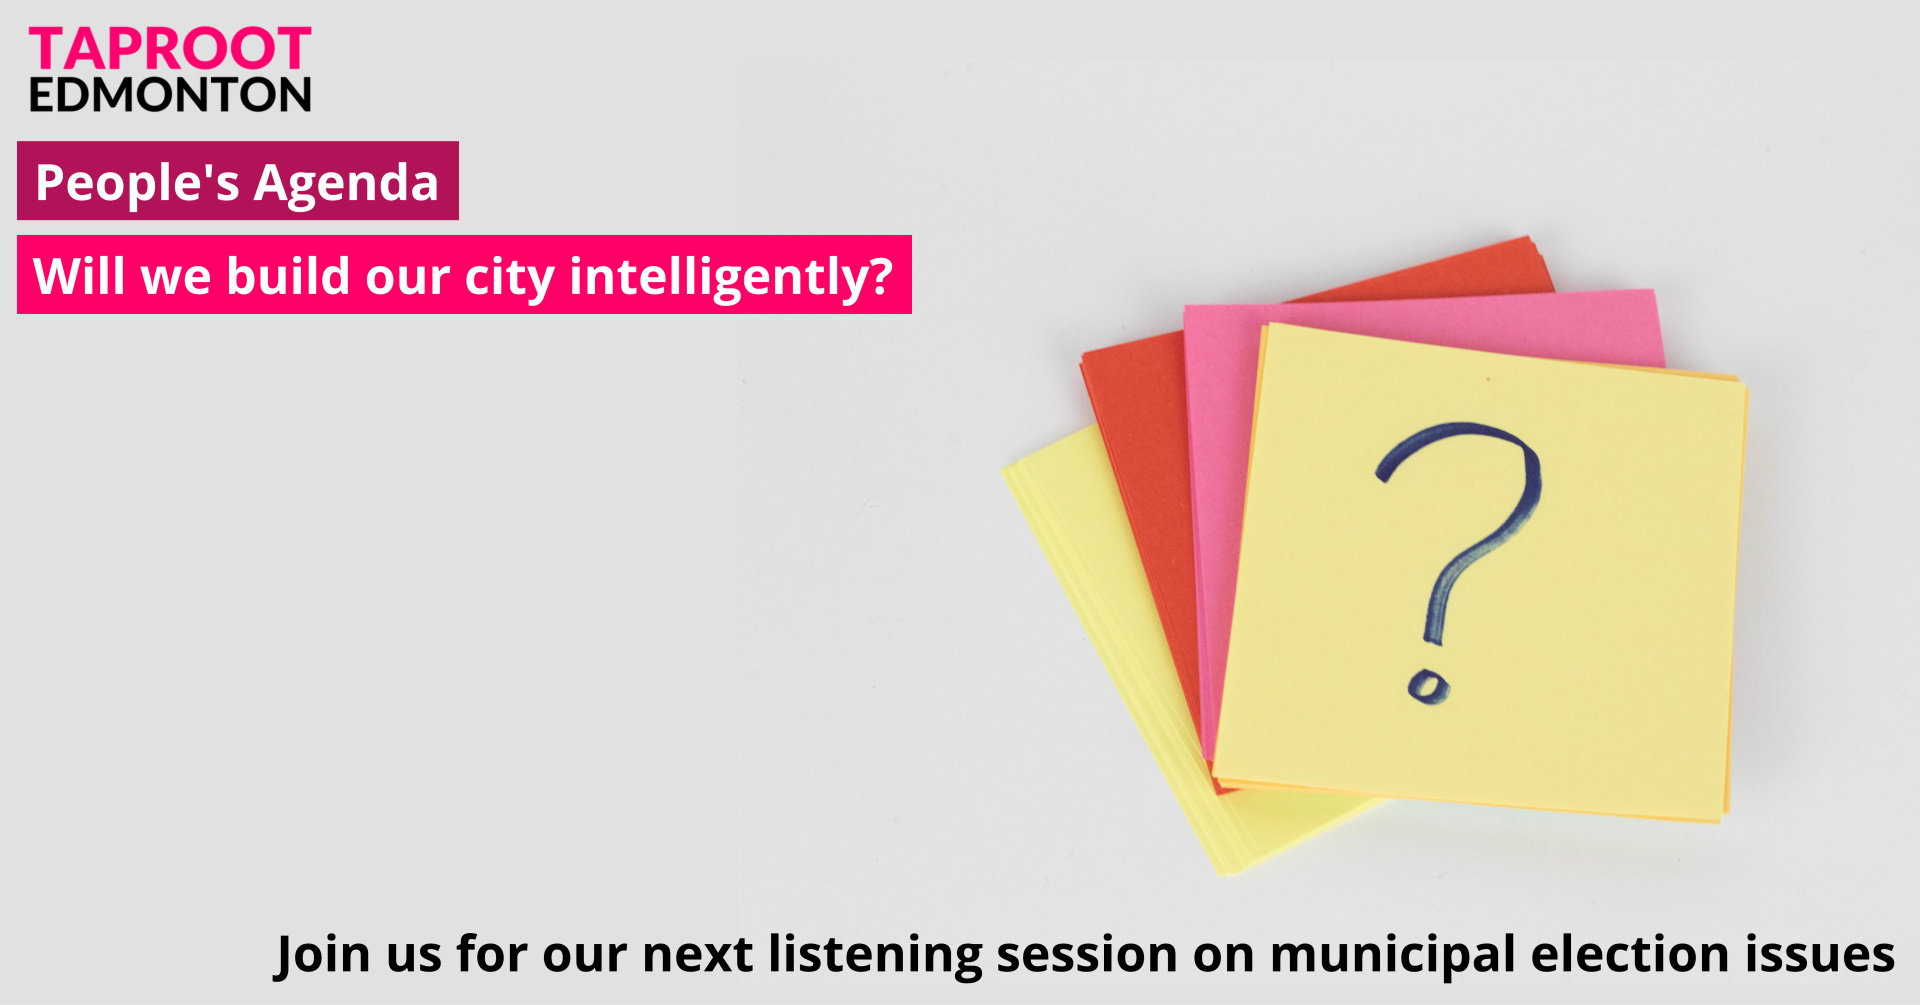 Promotional image for People's Agenda listening session on city-building and infrastructure